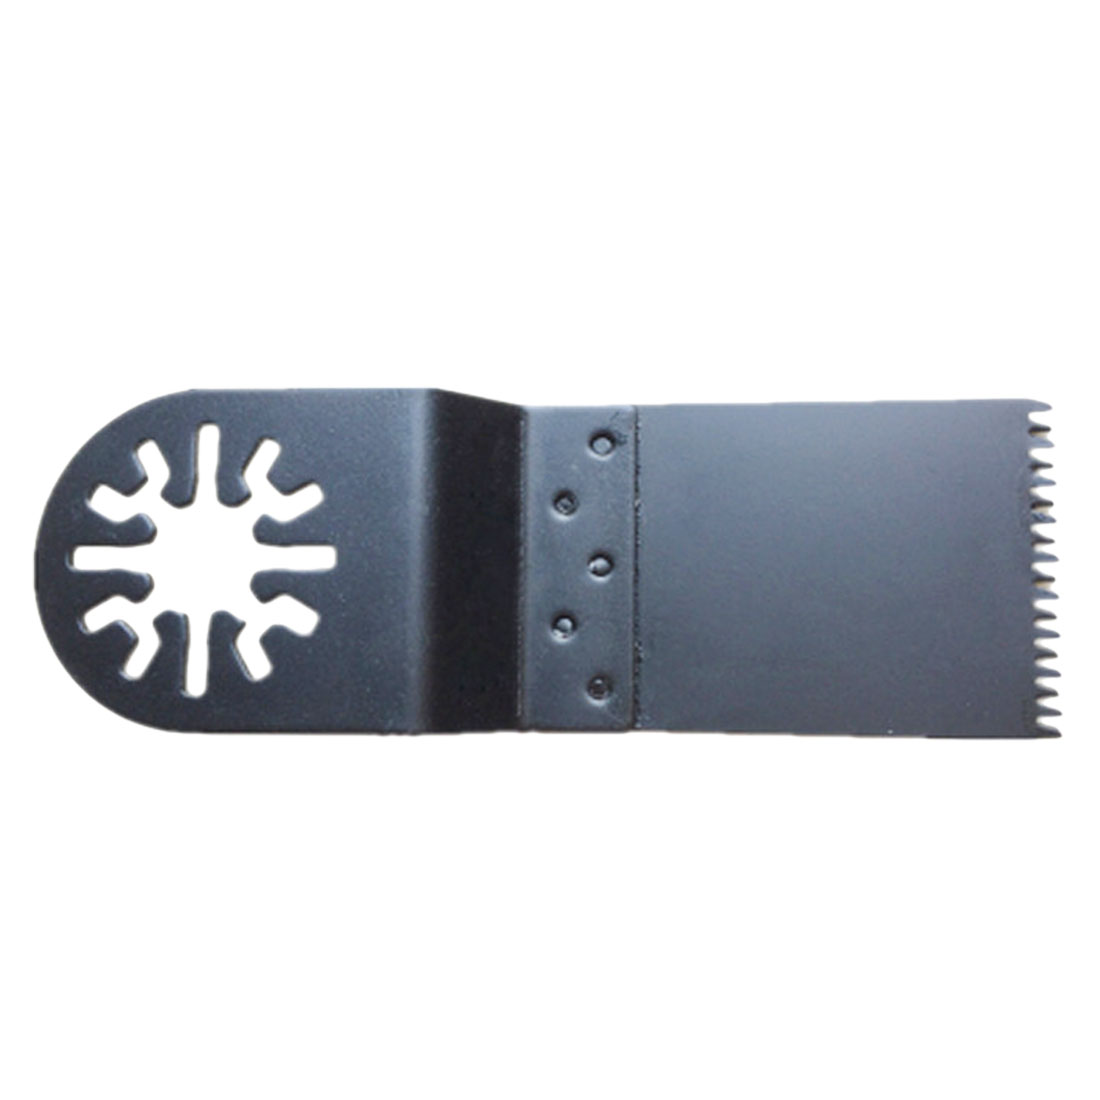 1pc 32mm Saw Blade Metal Oscillating Multi Tools For Metal Cutting Woodworking Cutter Power Tools Accessories Multi Tool Blades